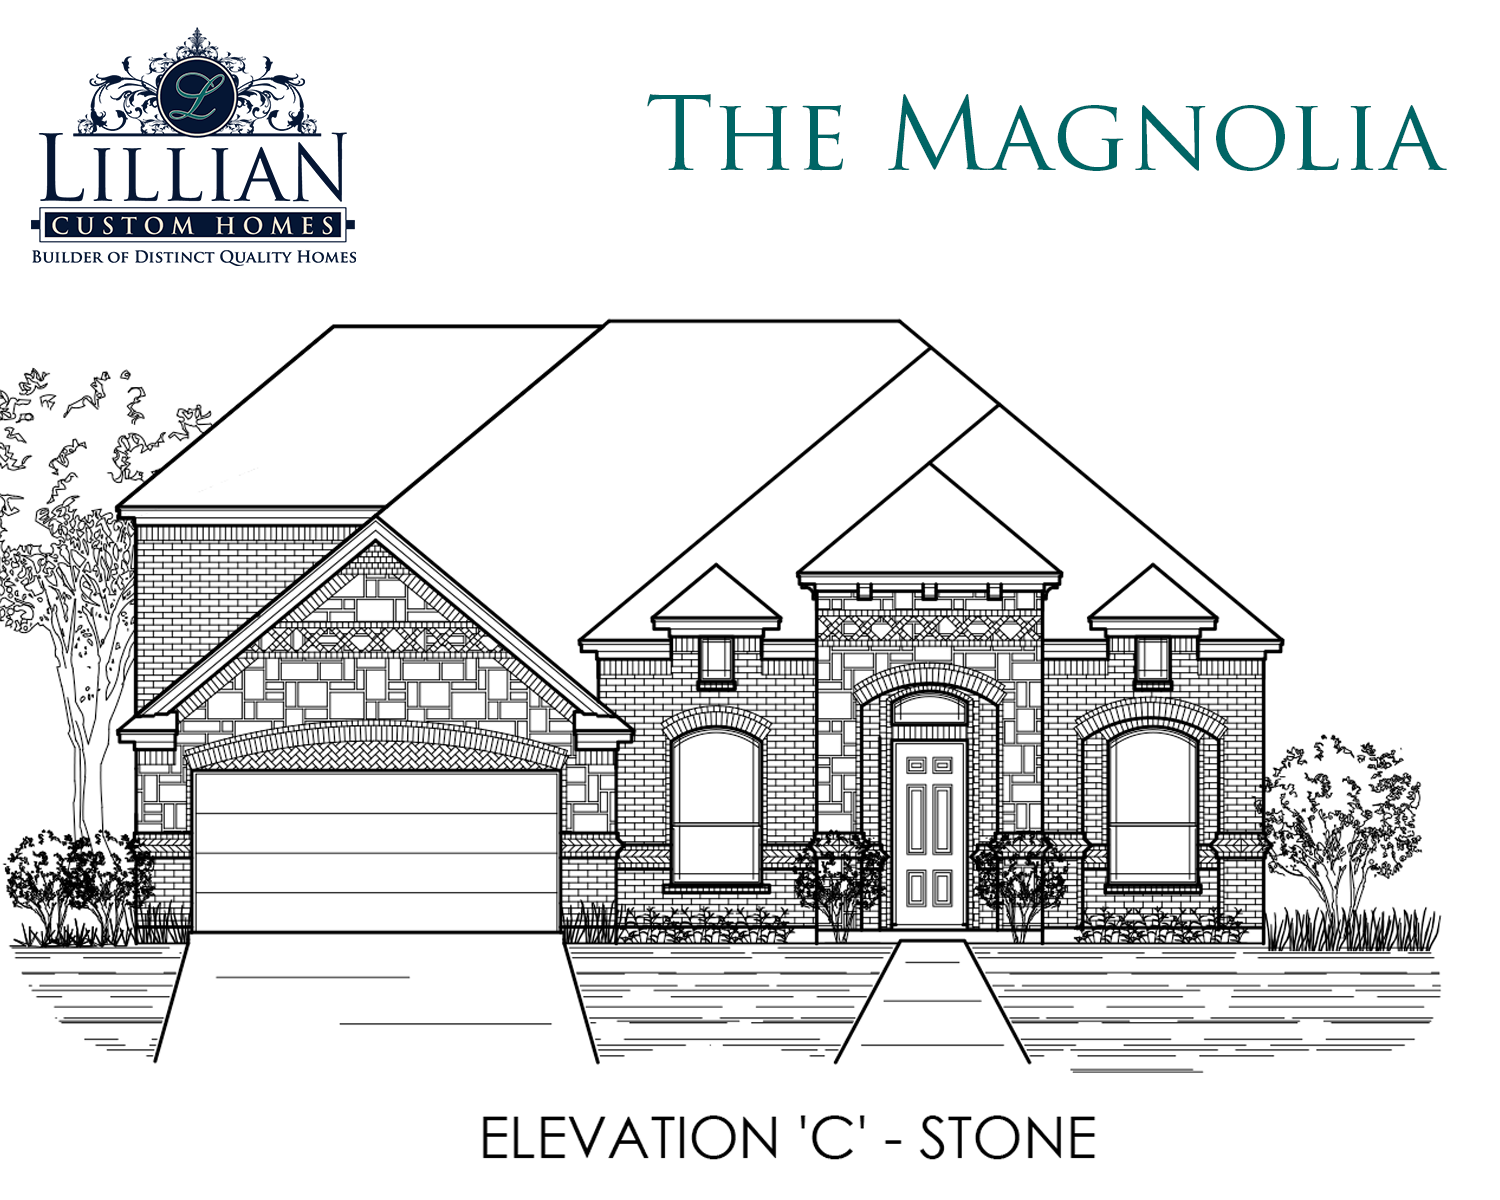 new homes for sale midlothian, tx lawson farms